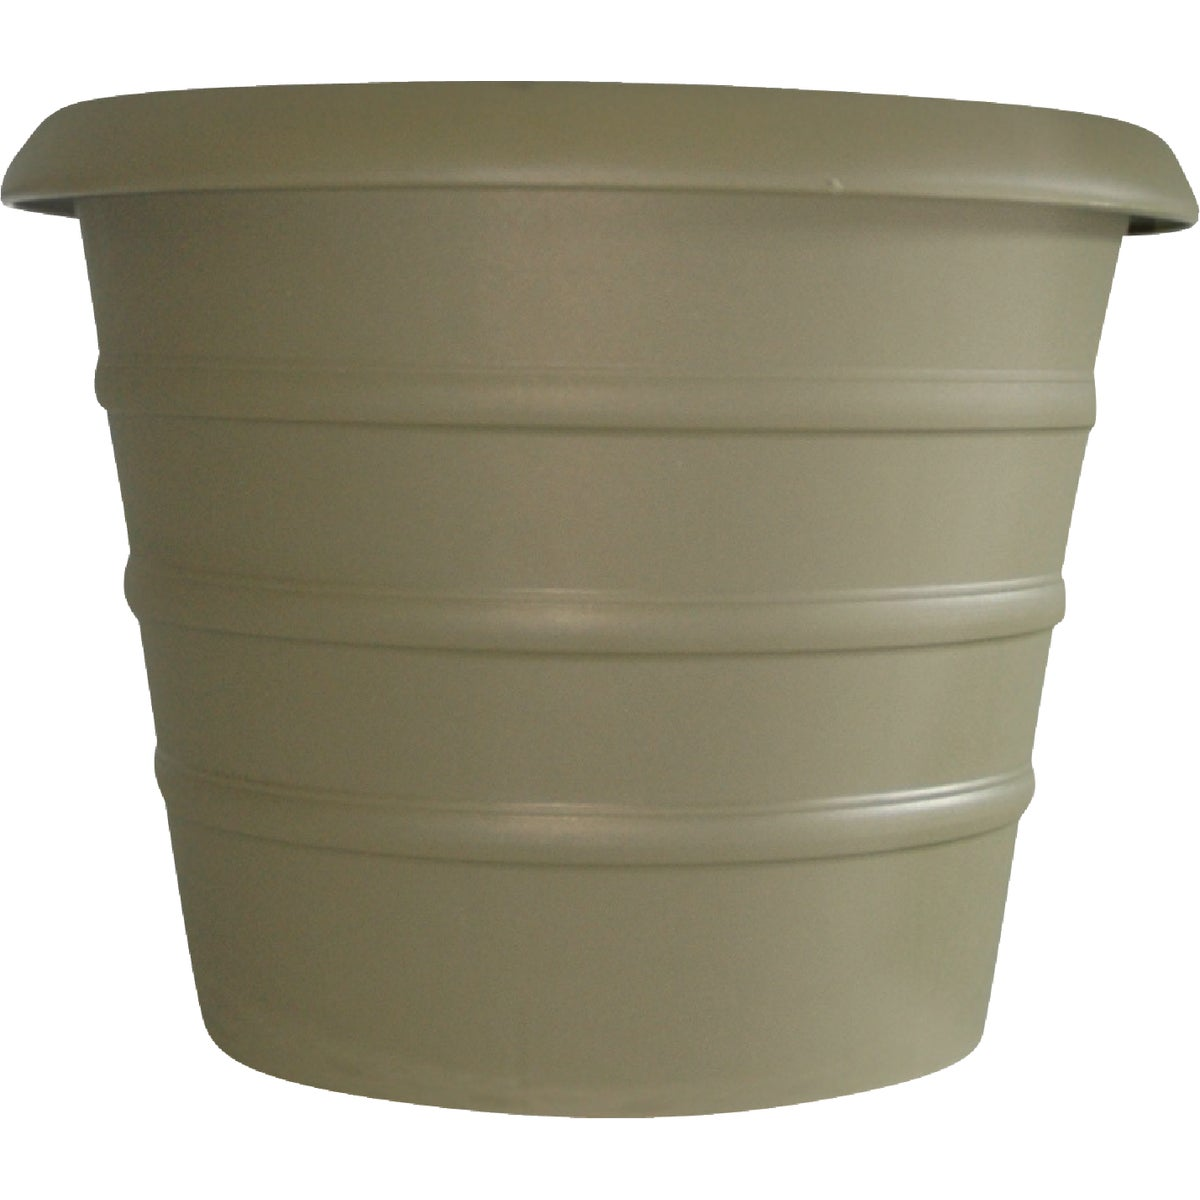 "6""SL GREEN MARINA POT - MSA06001B15 by Myers Industries Inc"